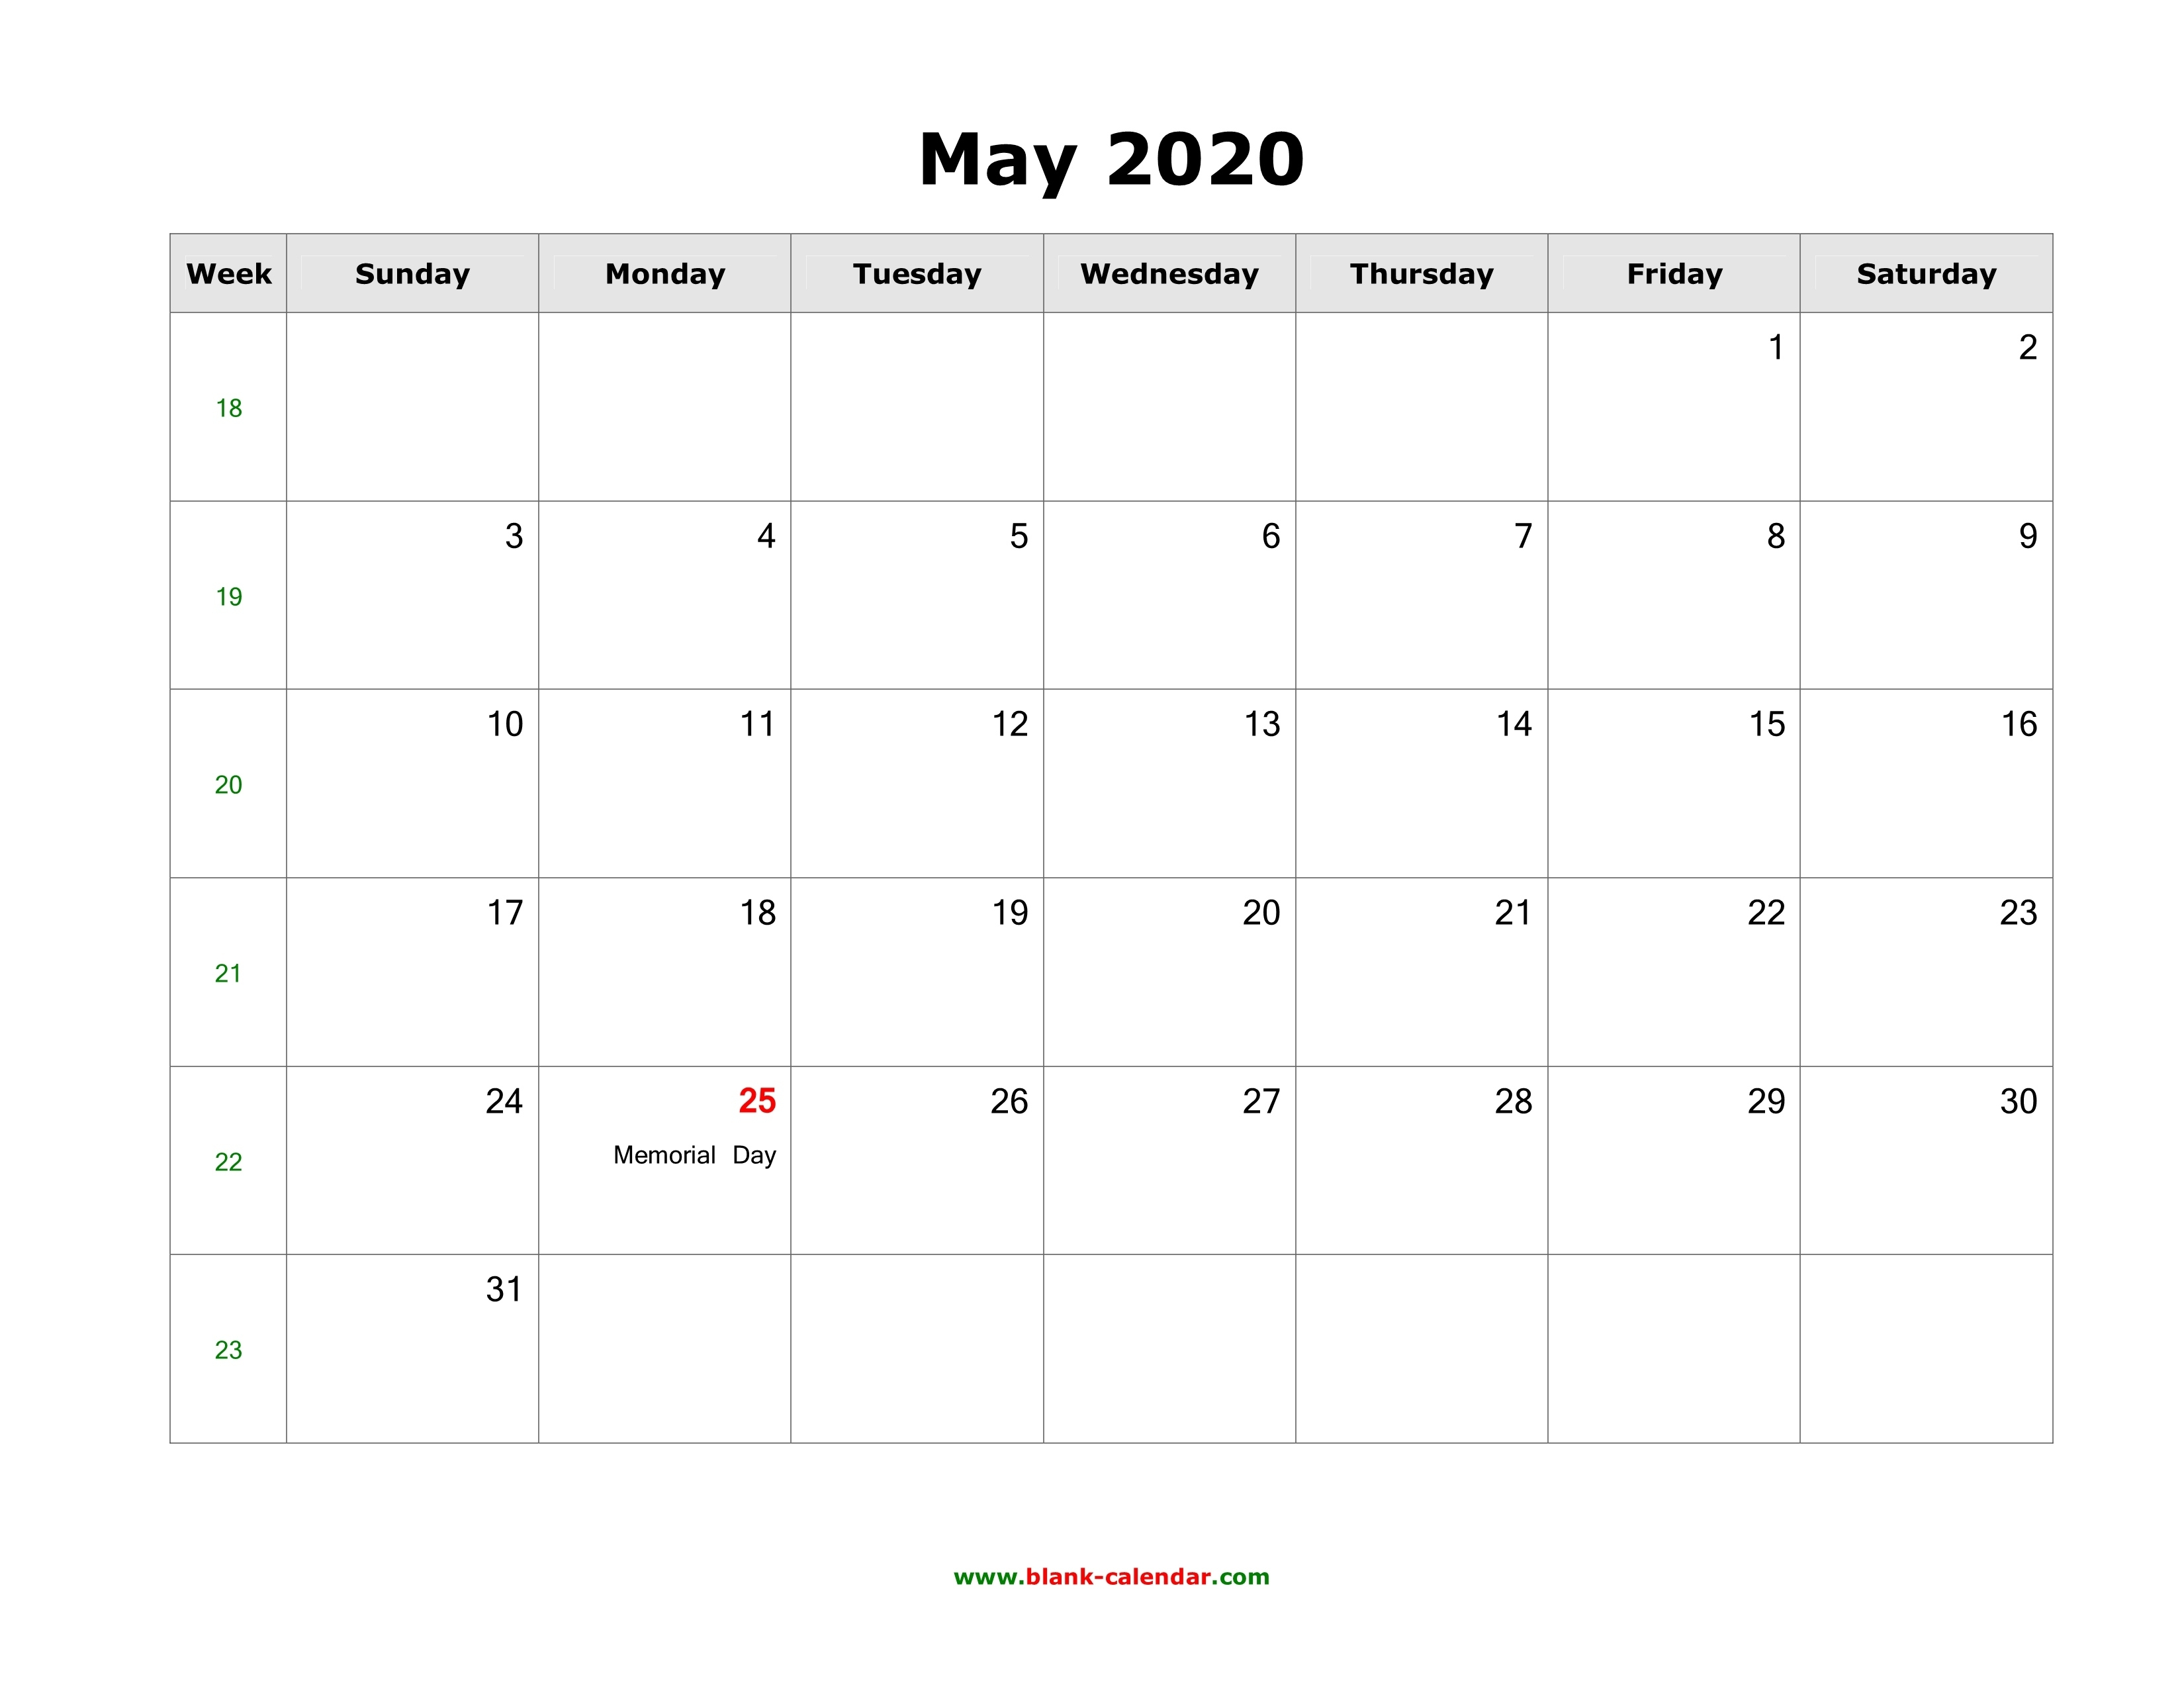 May 2020 Blank Calendar | Free Download Calendar Templates Calendar Template That Can Be Edited